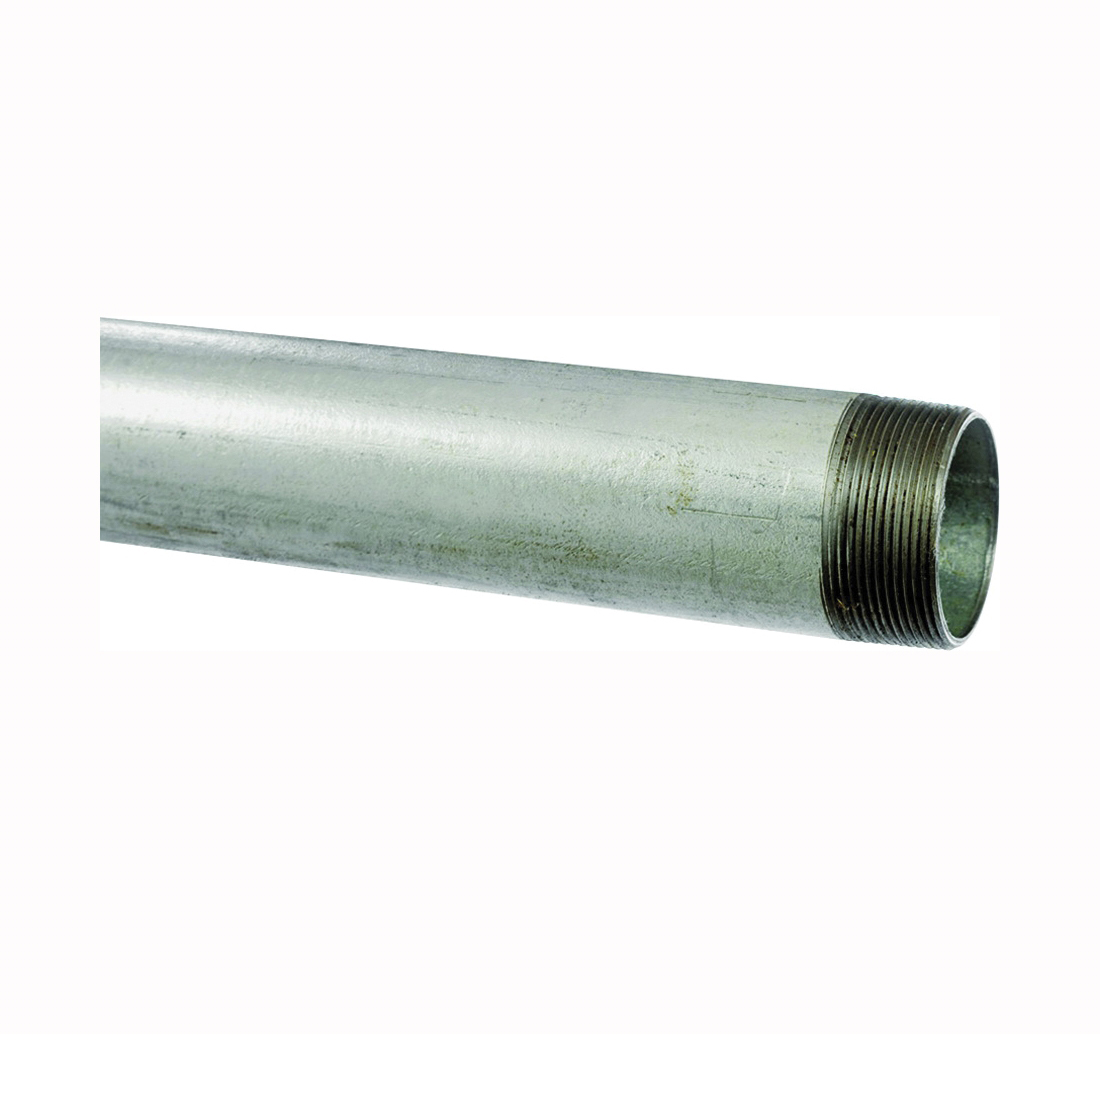 Picture of KLOECKNER METALS GALV-3/4 Pipe, 3/4 in, 10 ft L, Threaded